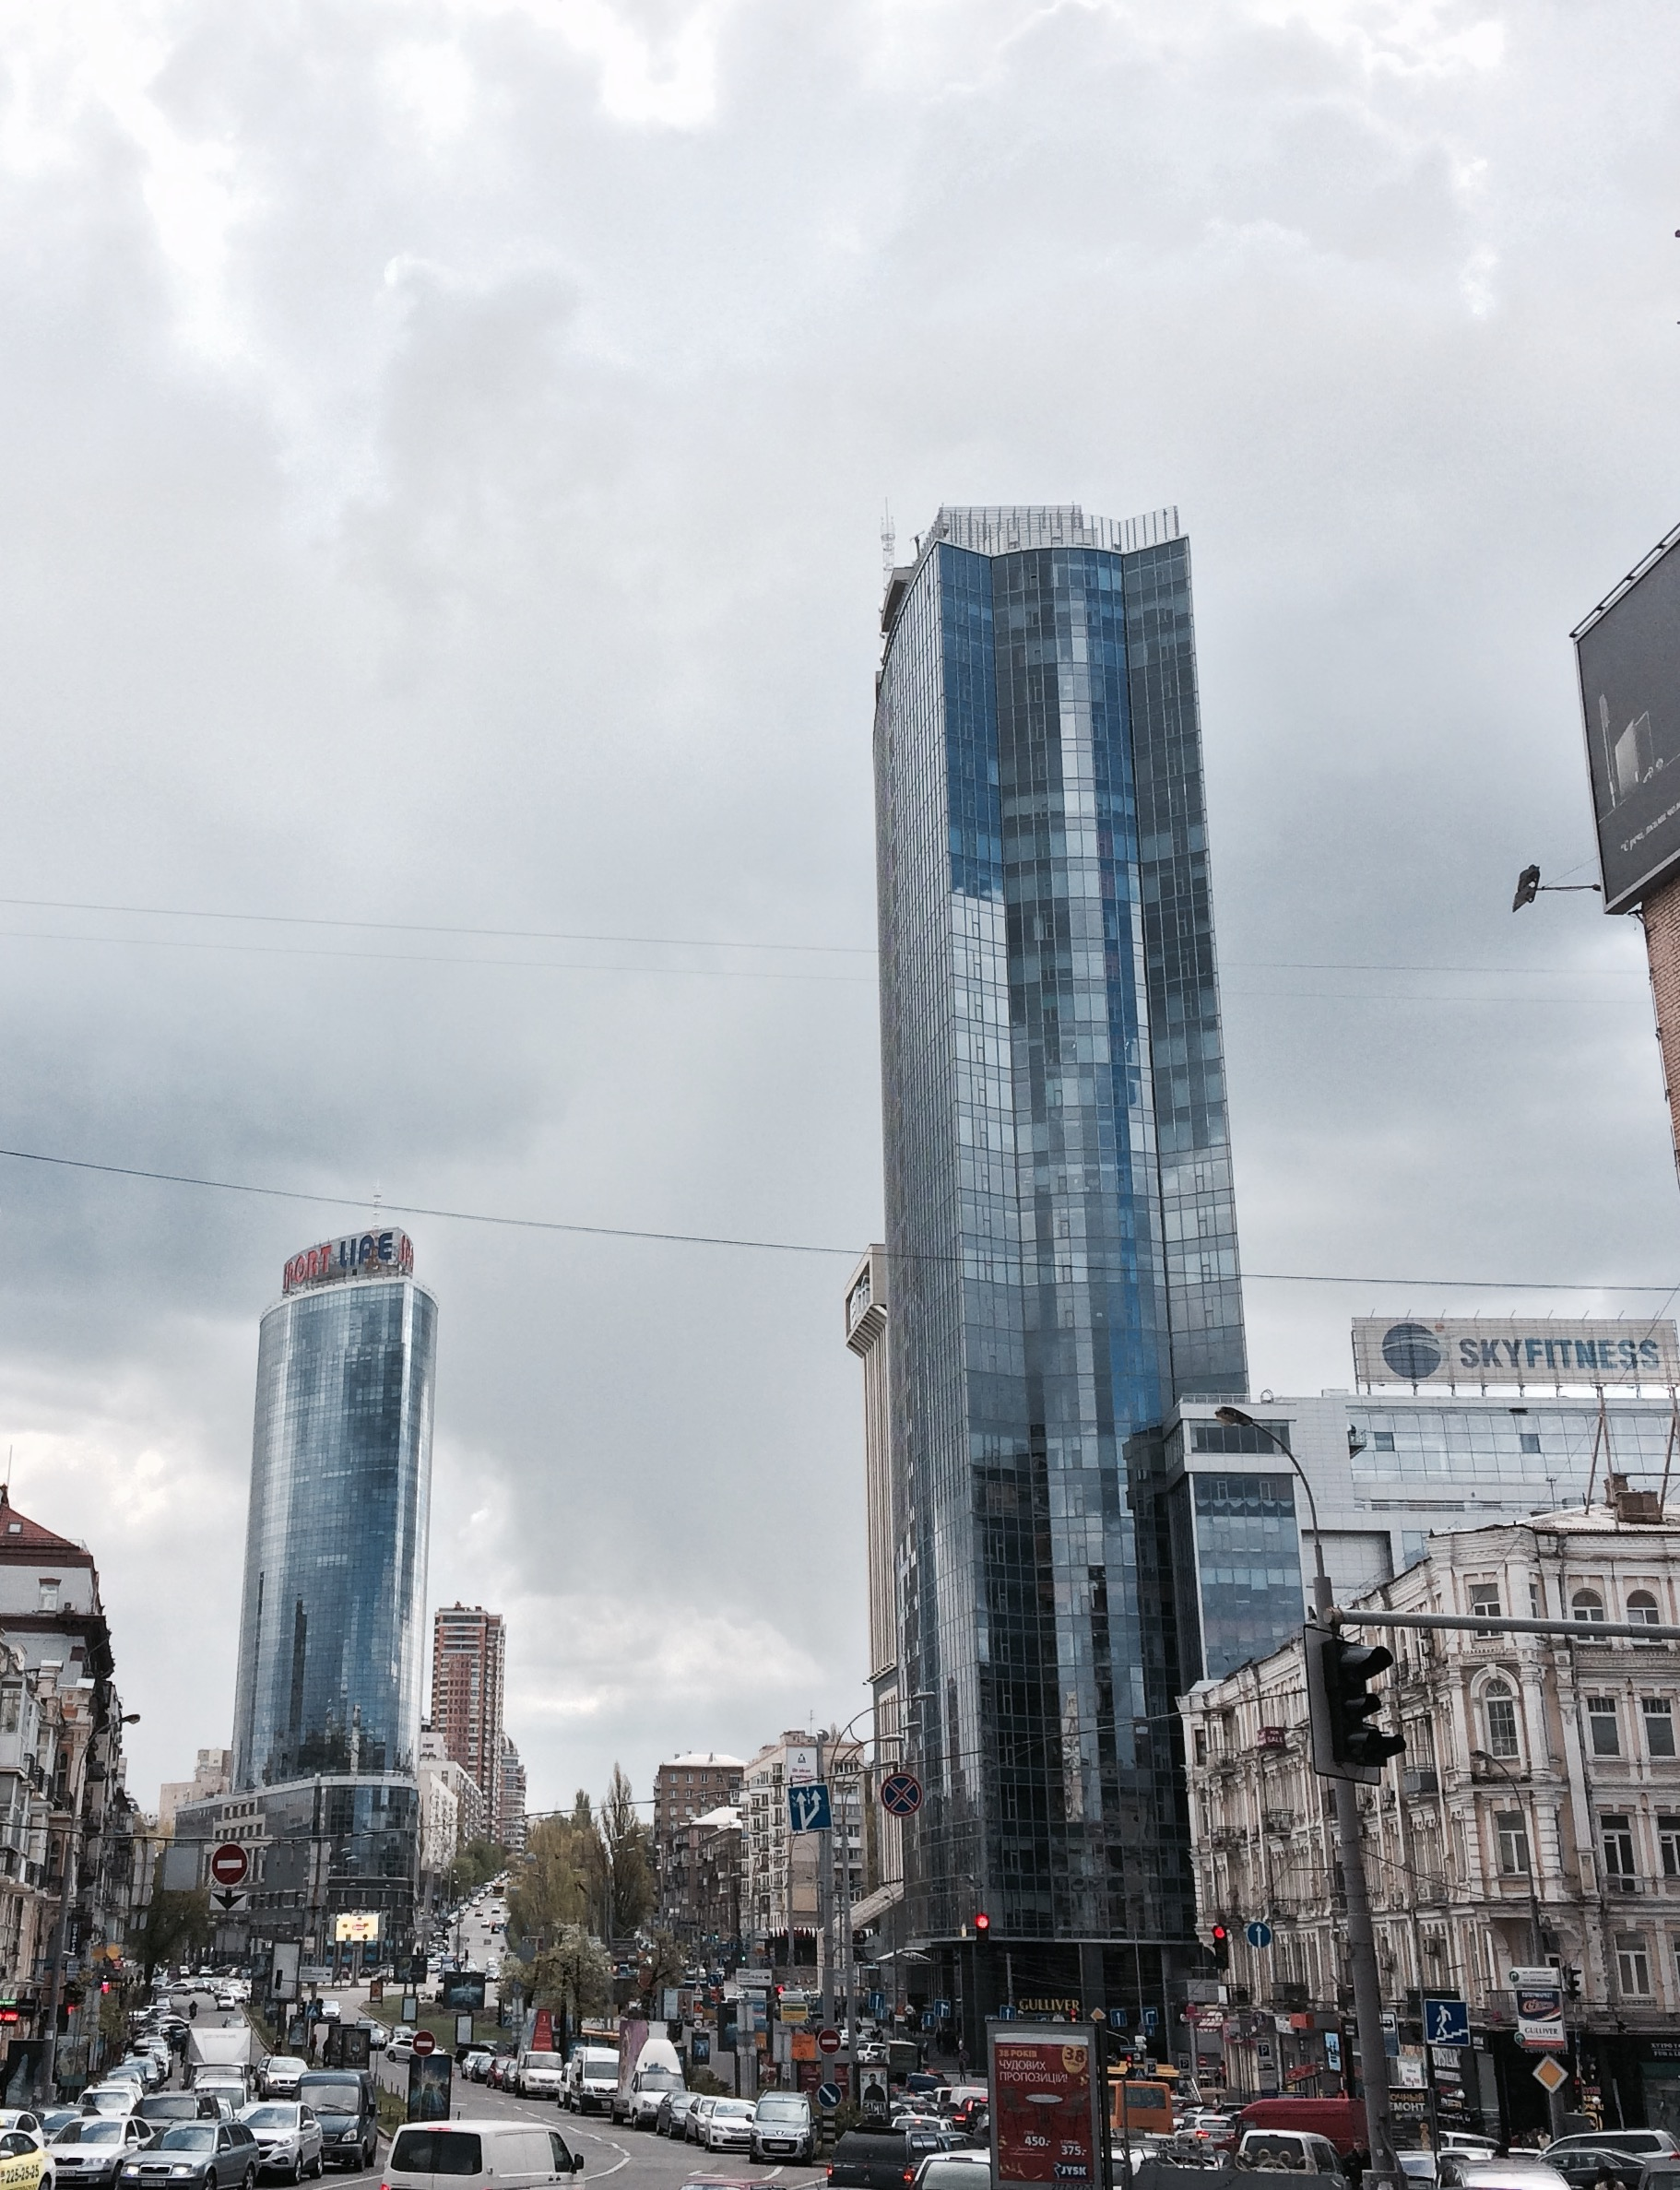 The Changing Business Landscape of Romania: Lessons for and from Transition Economies